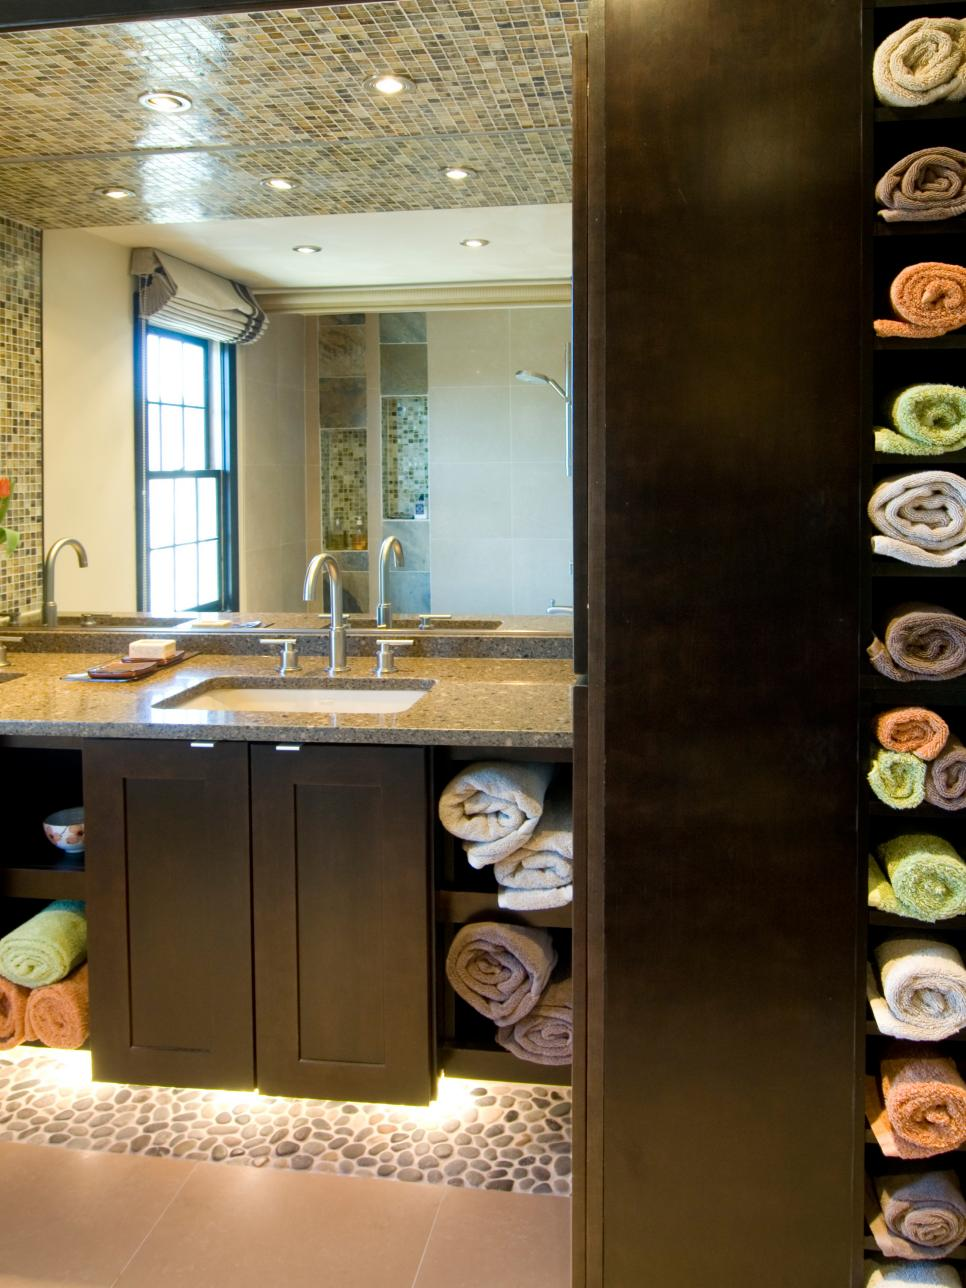 Bathroom Towel Storage 12 clever bathroom storage ideas | hgtv